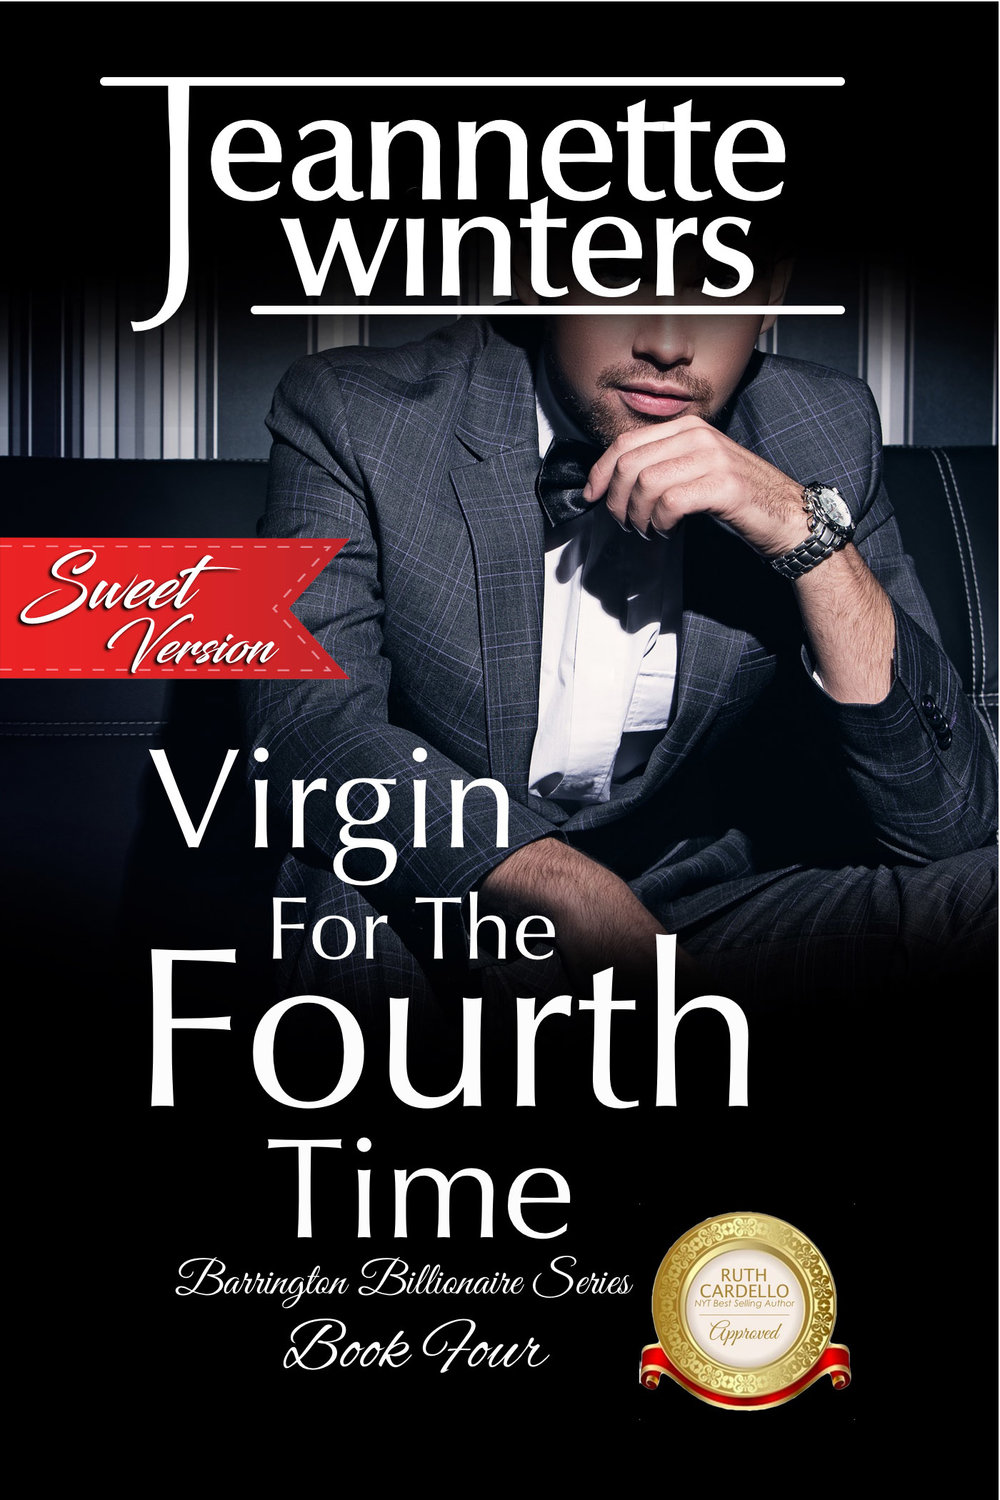 Virgin for the Fourth Time Sweet Version.jpg